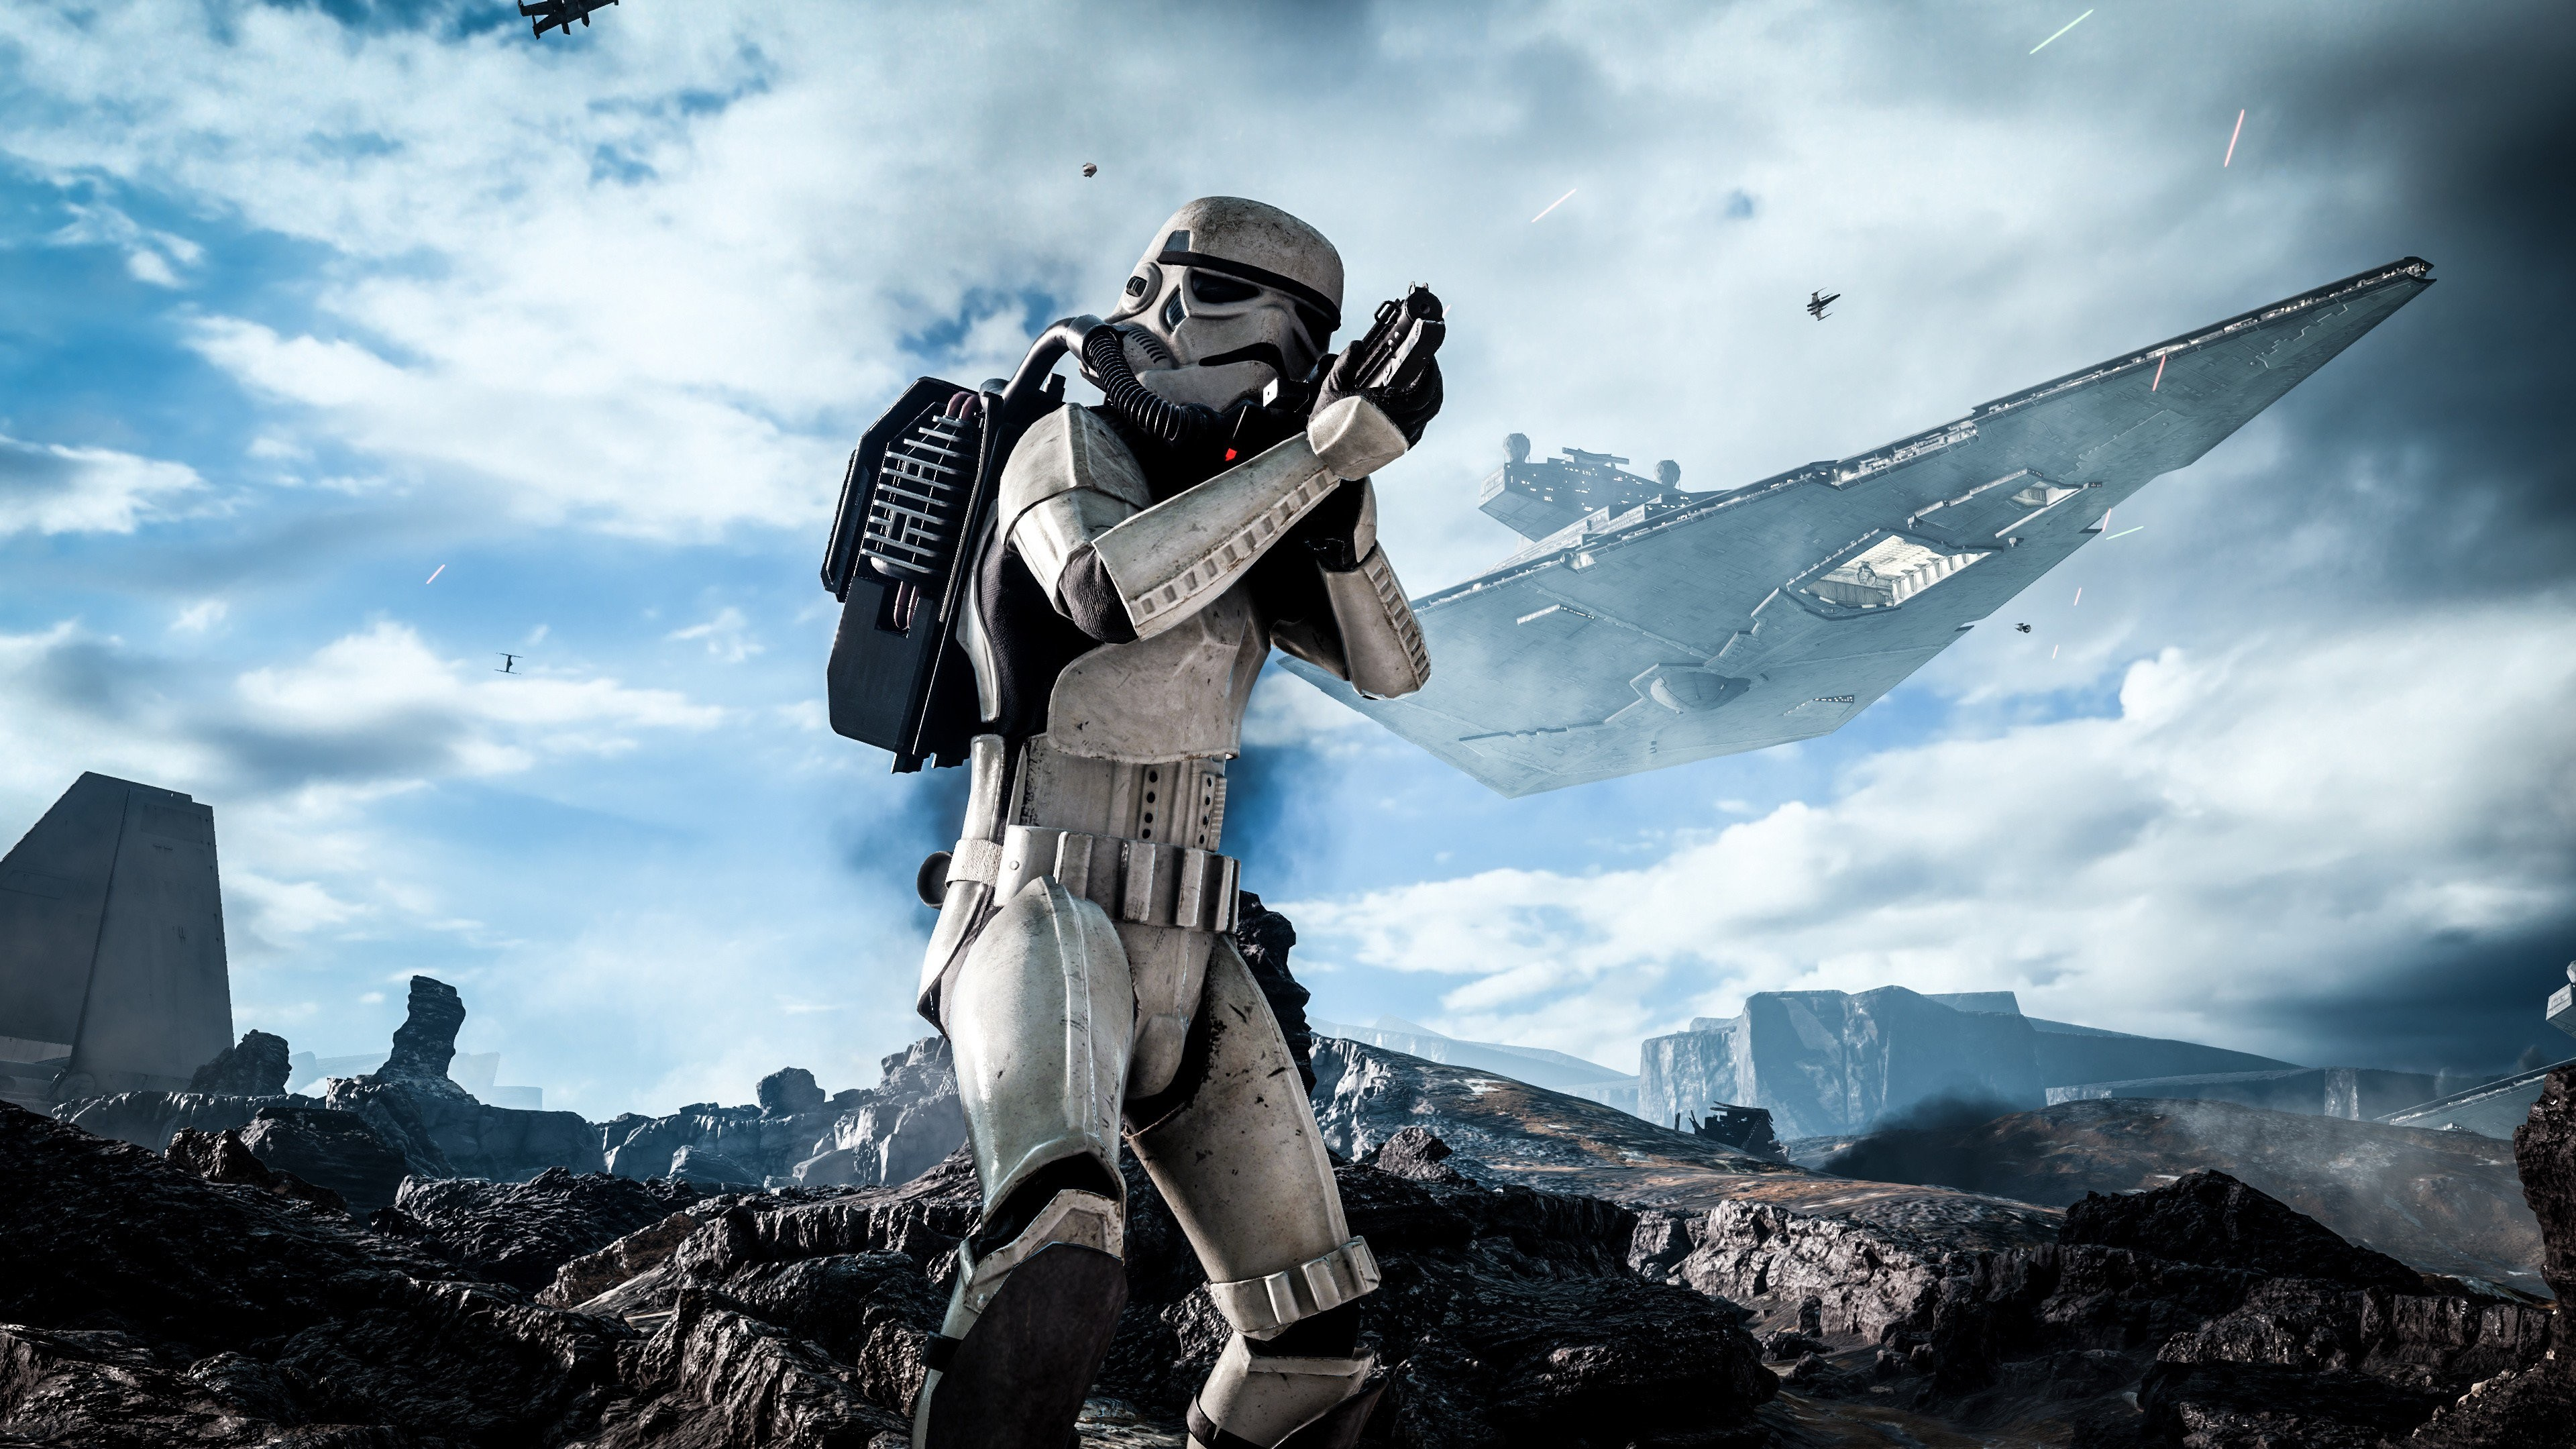 Res: 3840x2160, Stormtrooper In Star Wars HD Movies 4k Wallpapers Images And Wallpaper